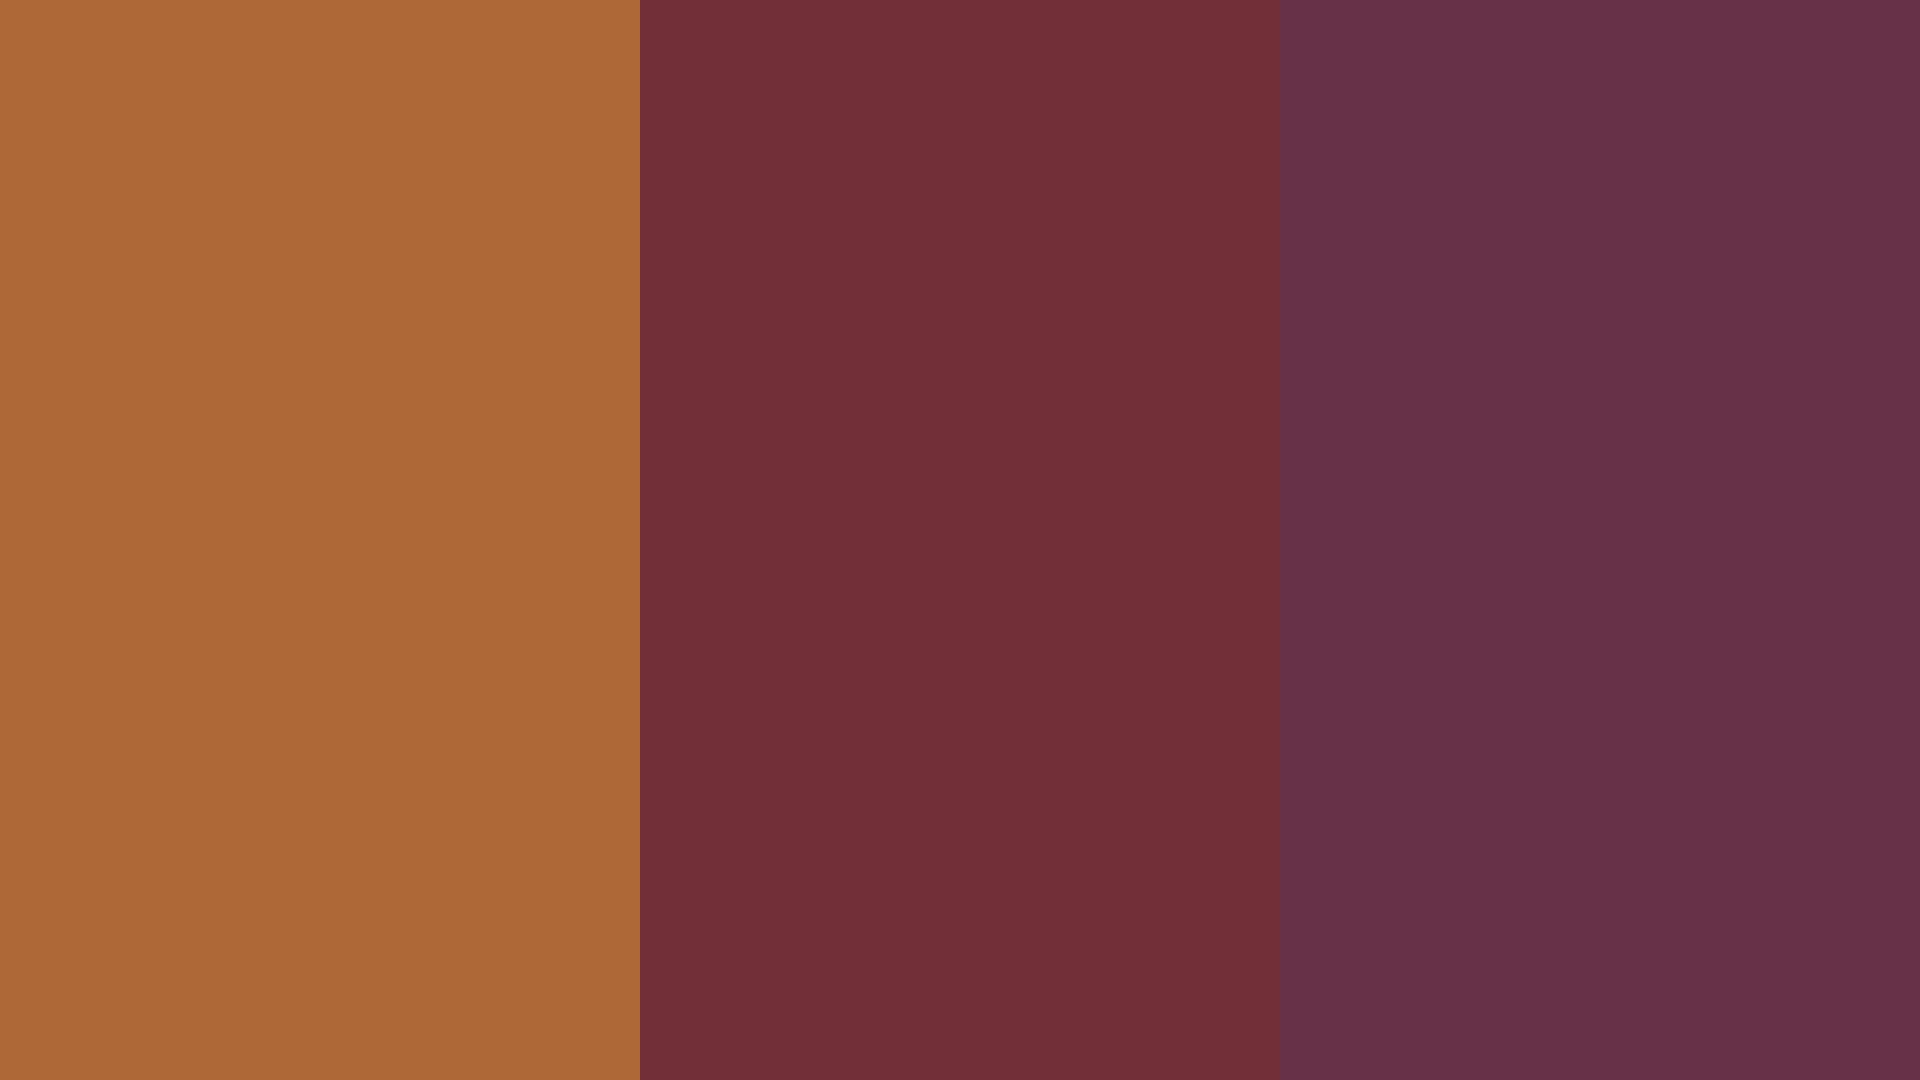 1920x1080 Windsor Tan Wine and Wine Dregs Three Color Background 1920x1080